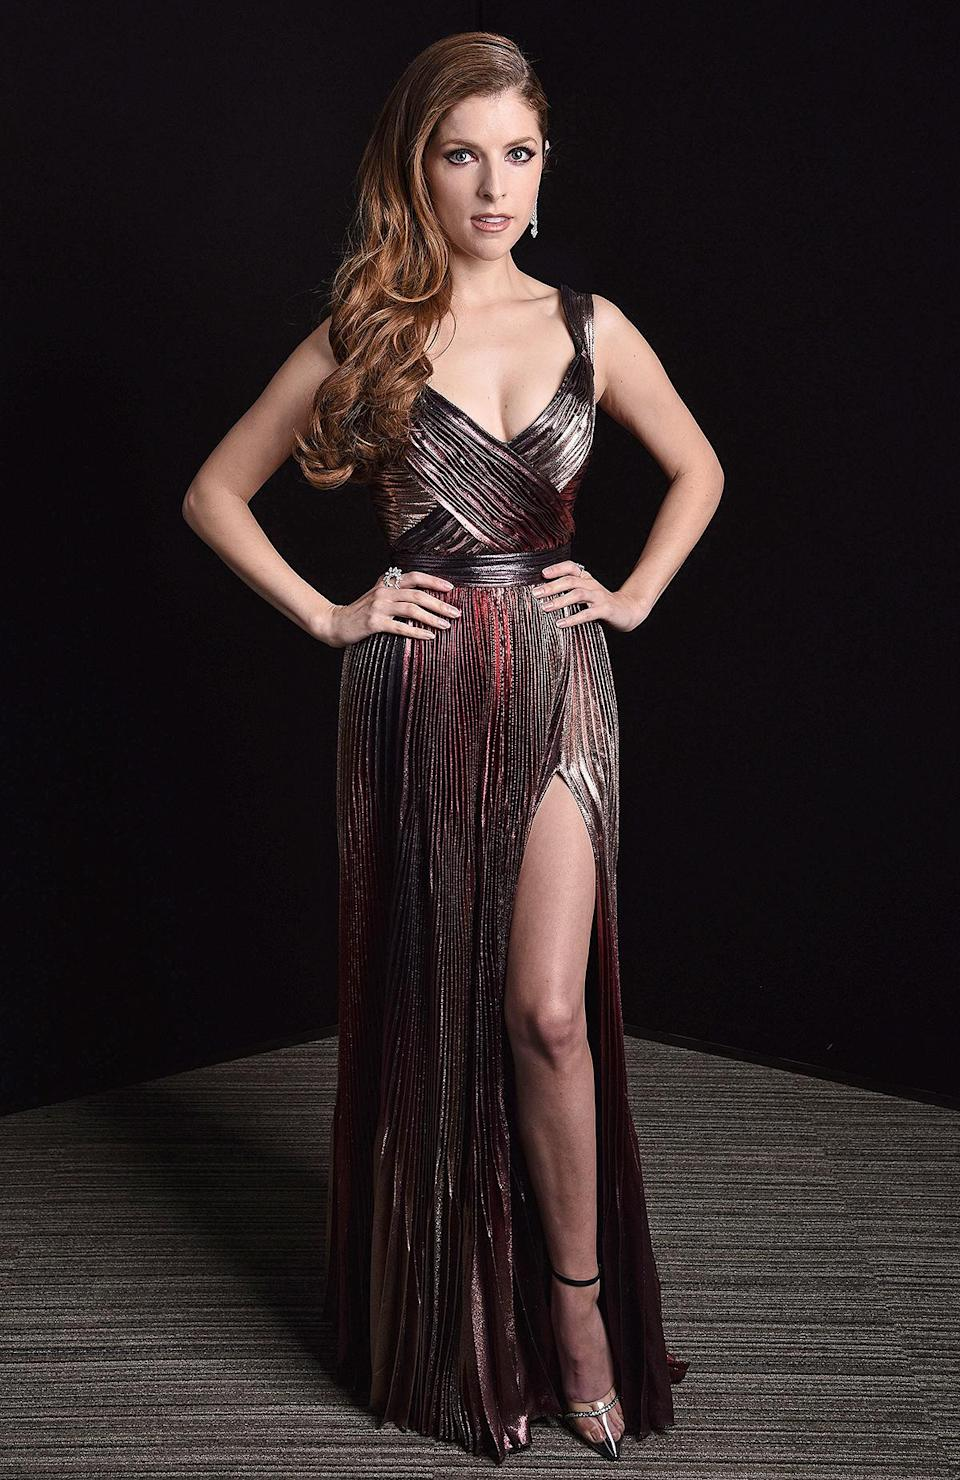 """<p>shines in a metallic pink and gold Zuhair Murad pleated gown with Messika Paris jewels. </p> <p>""""We loved the dress's modern take on a classic Hollywood style and felt it was fitting as we all work our way back to the red carpet mentally, spiritually and physically,"""" the actress' <a href=""""https://www.instagram.com/jillandjordan/?hl=en"""" rel=""""nofollow noopener"""" target=""""_blank"""" data-ylk=""""slk:stylists Jill Lincoln and Jordan Johnson"""" class=""""link rapid-noclick-resp"""">stylists Jill Lincoln and Jordan Johnson</a> tell PEOPLE.</p>"""